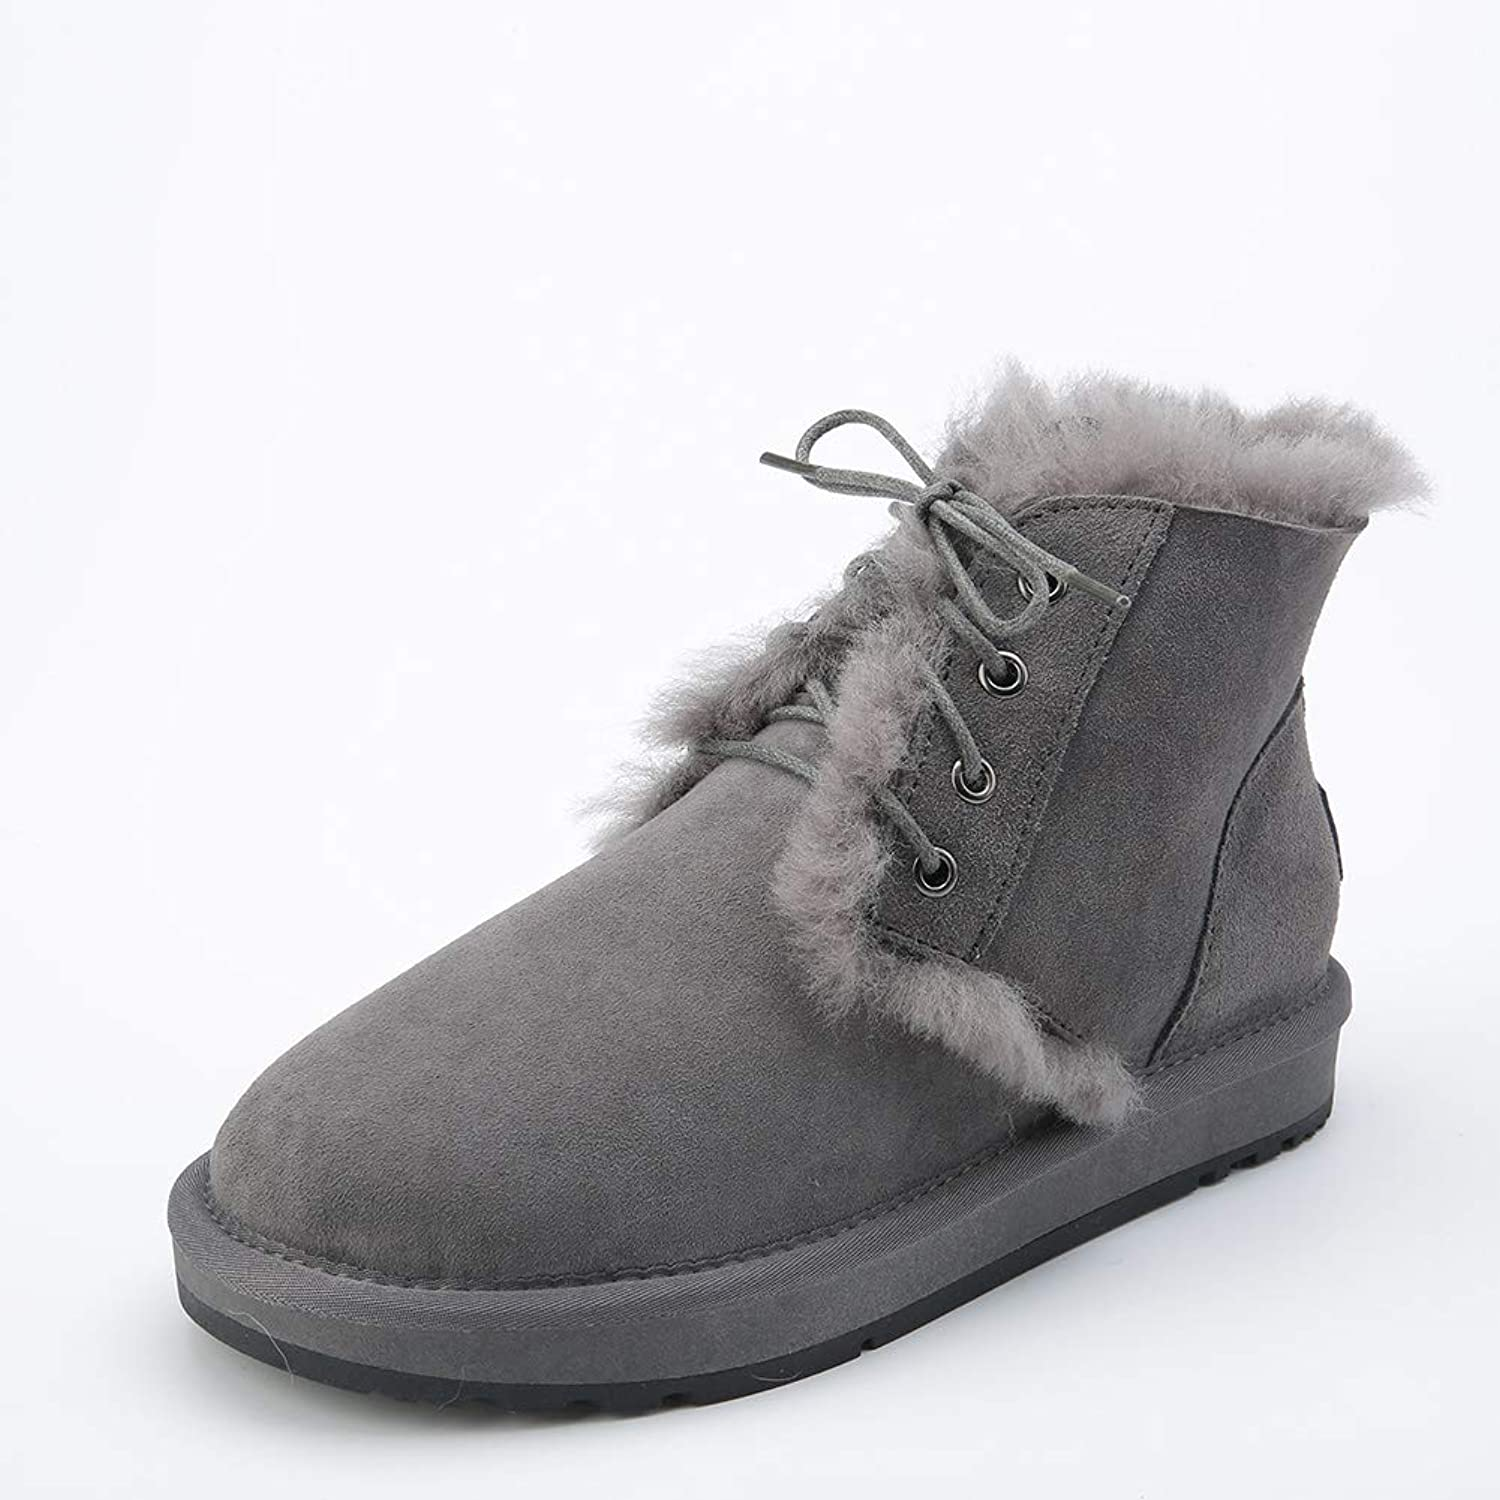 INOE CREATE GLAMOUR Fashion Style Real Sheepskin Leather Fur Lined Women Short Ankle Winter Snow Boots Lace Up Casual Winter shoes